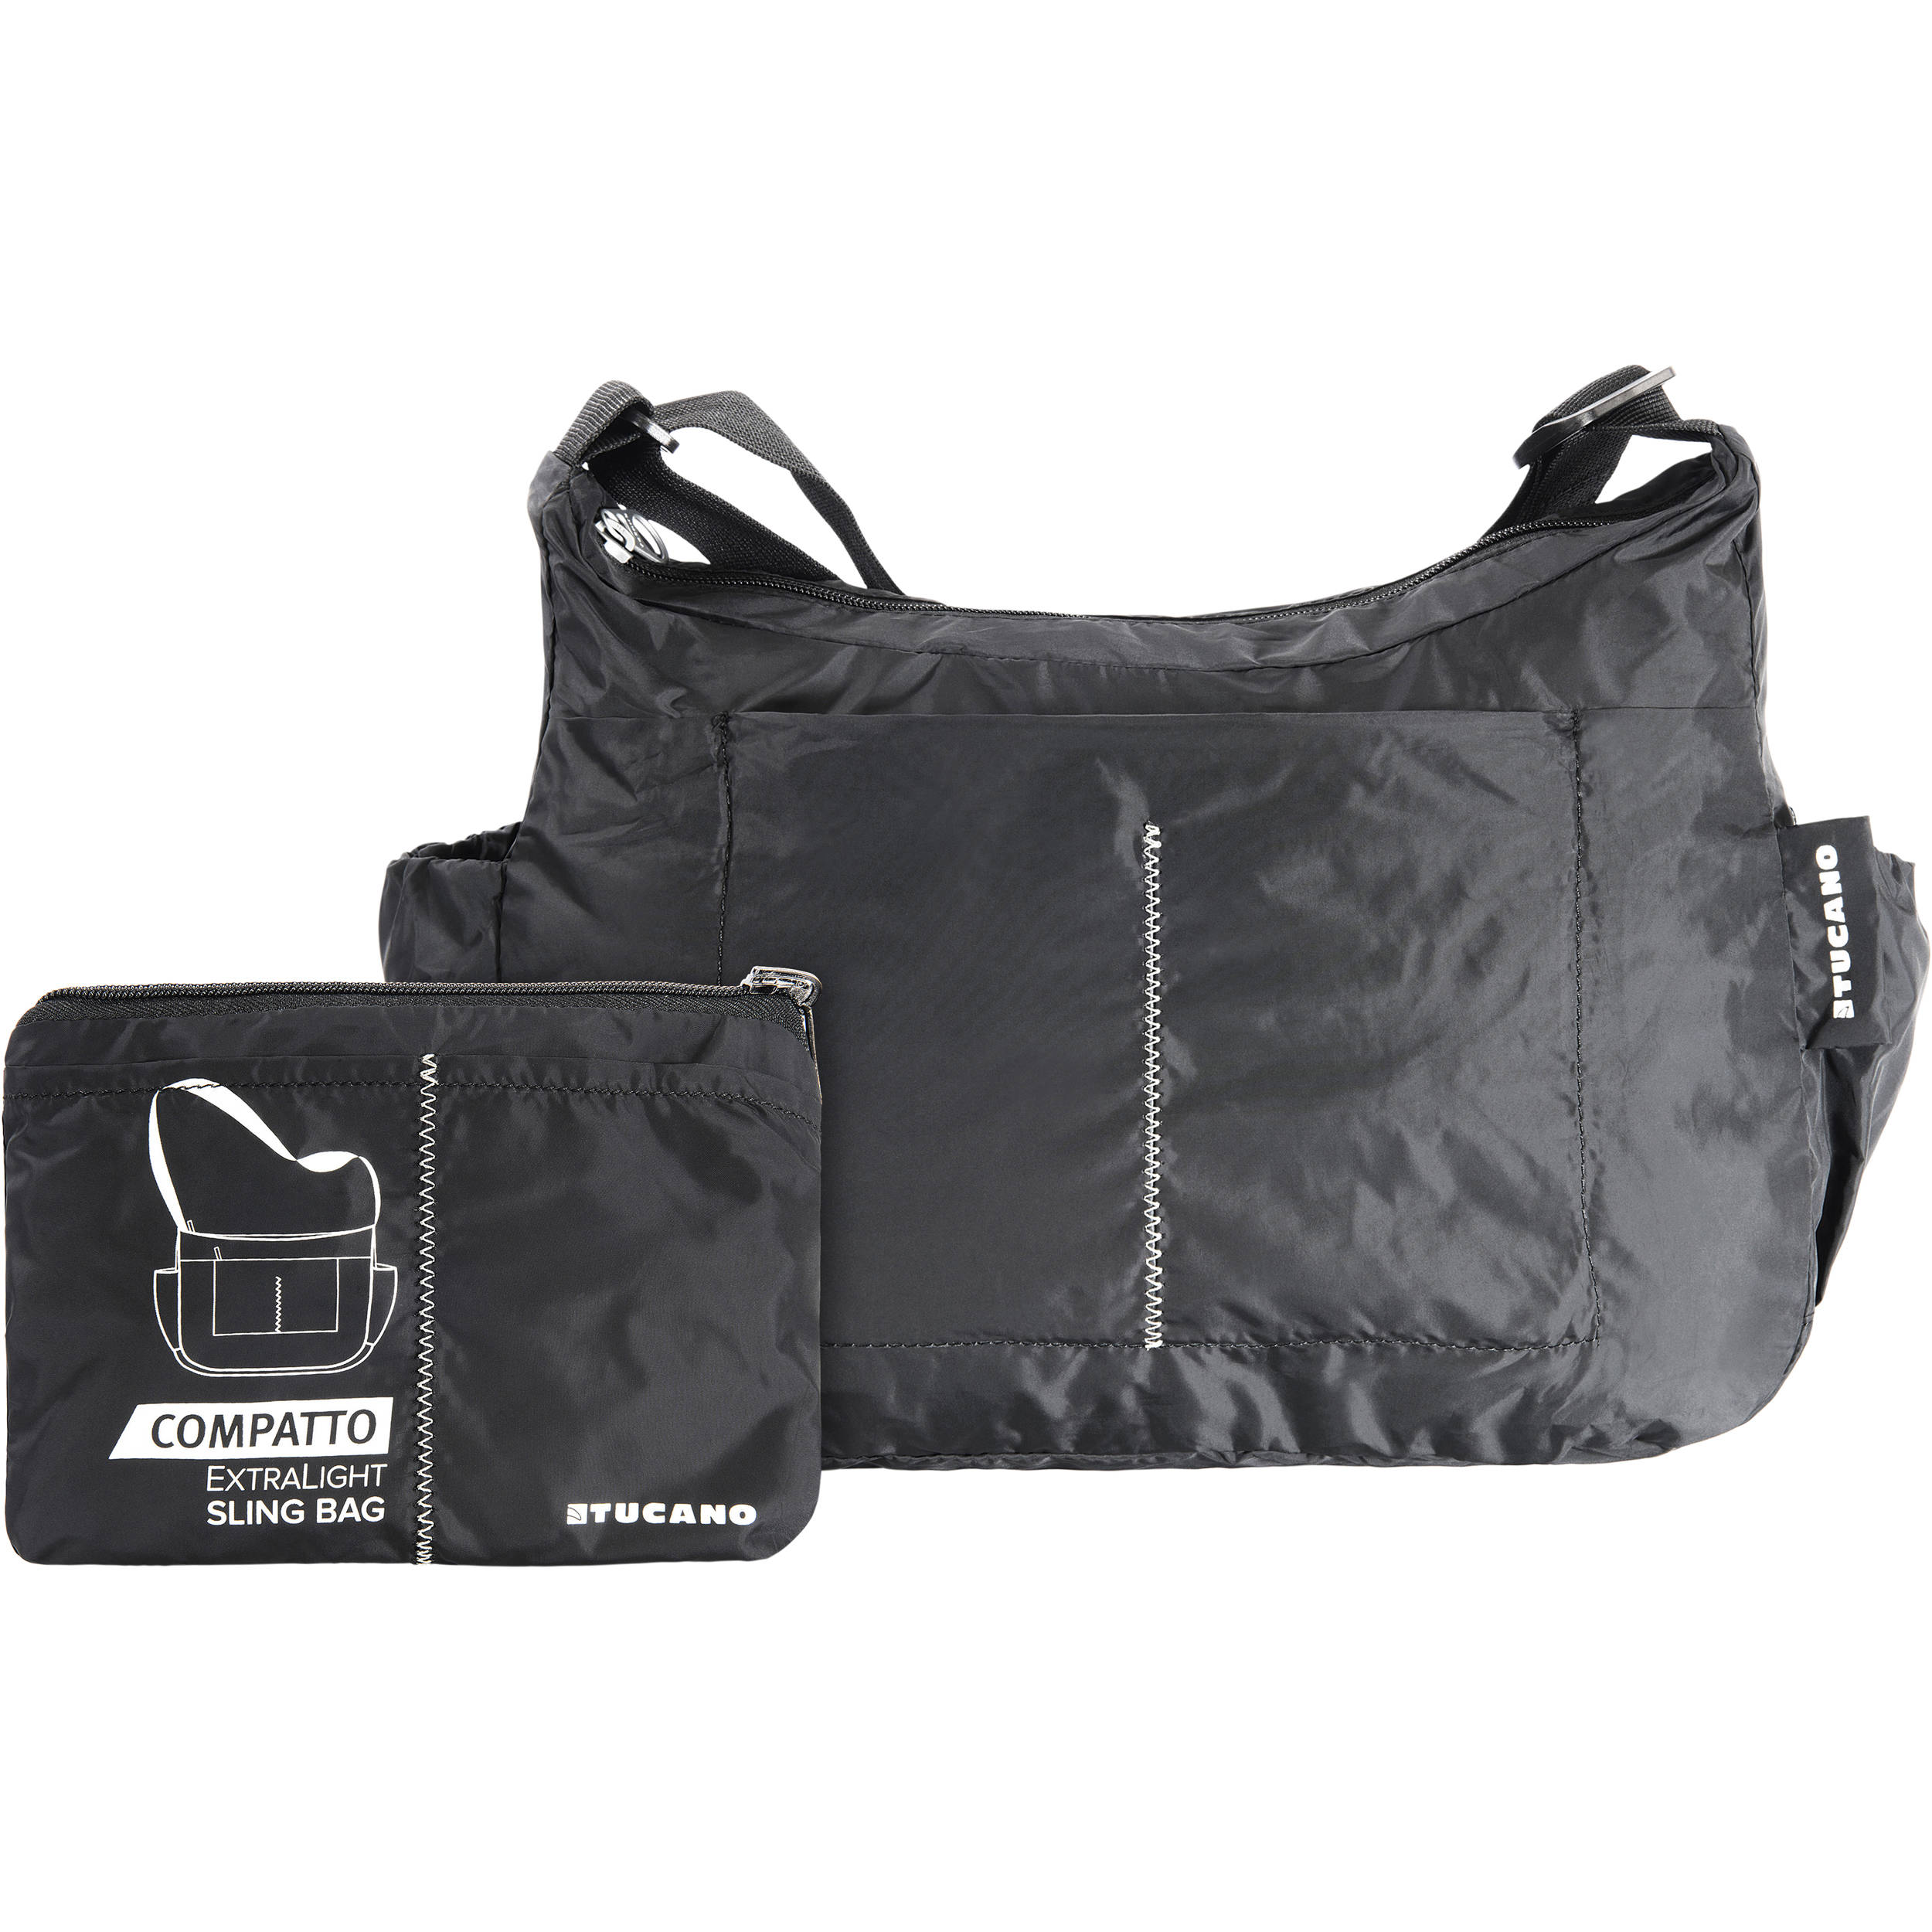 Tucano Compatto XL Water-Resistant 15L Packable Slingbag BPCOSL